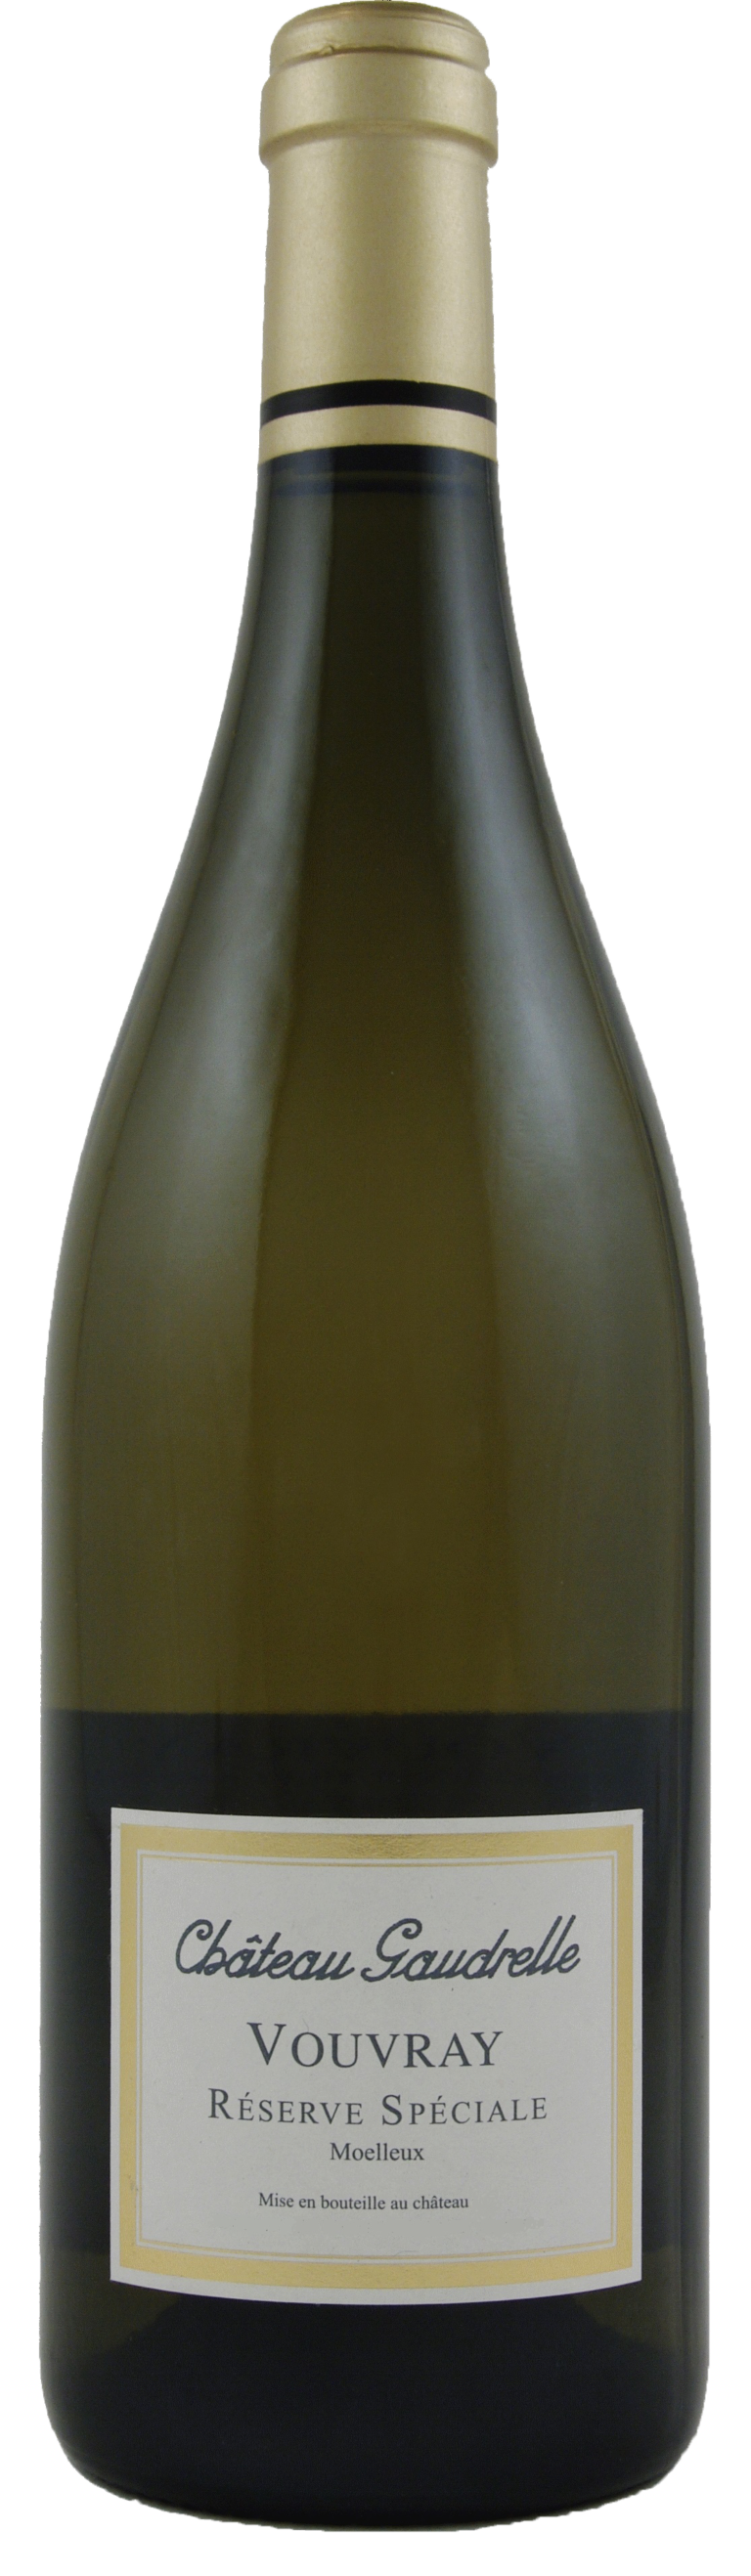 Reserve Speciale (Moelleux) 75 cl